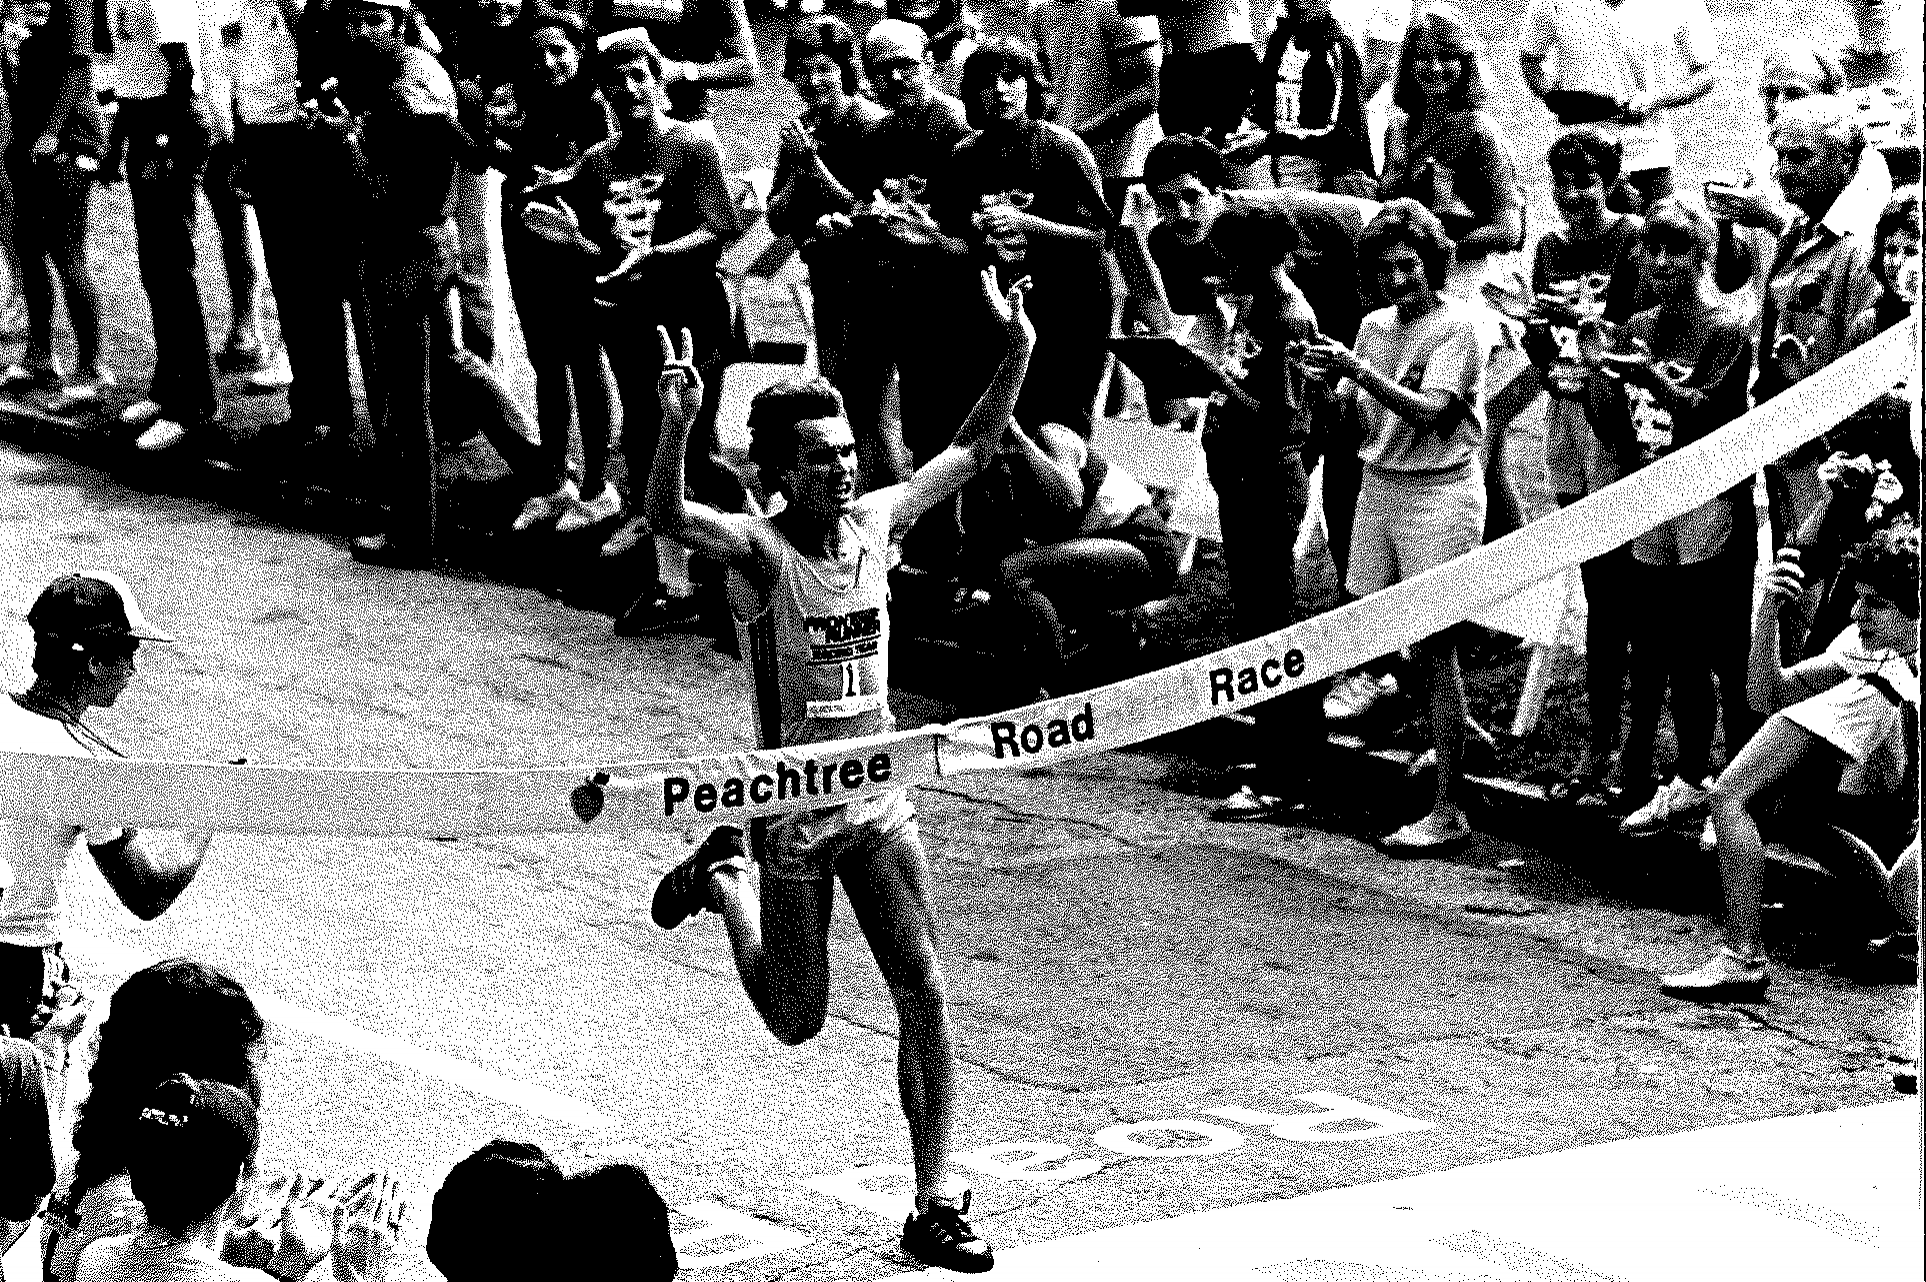 Craig Virgin winning in 1981